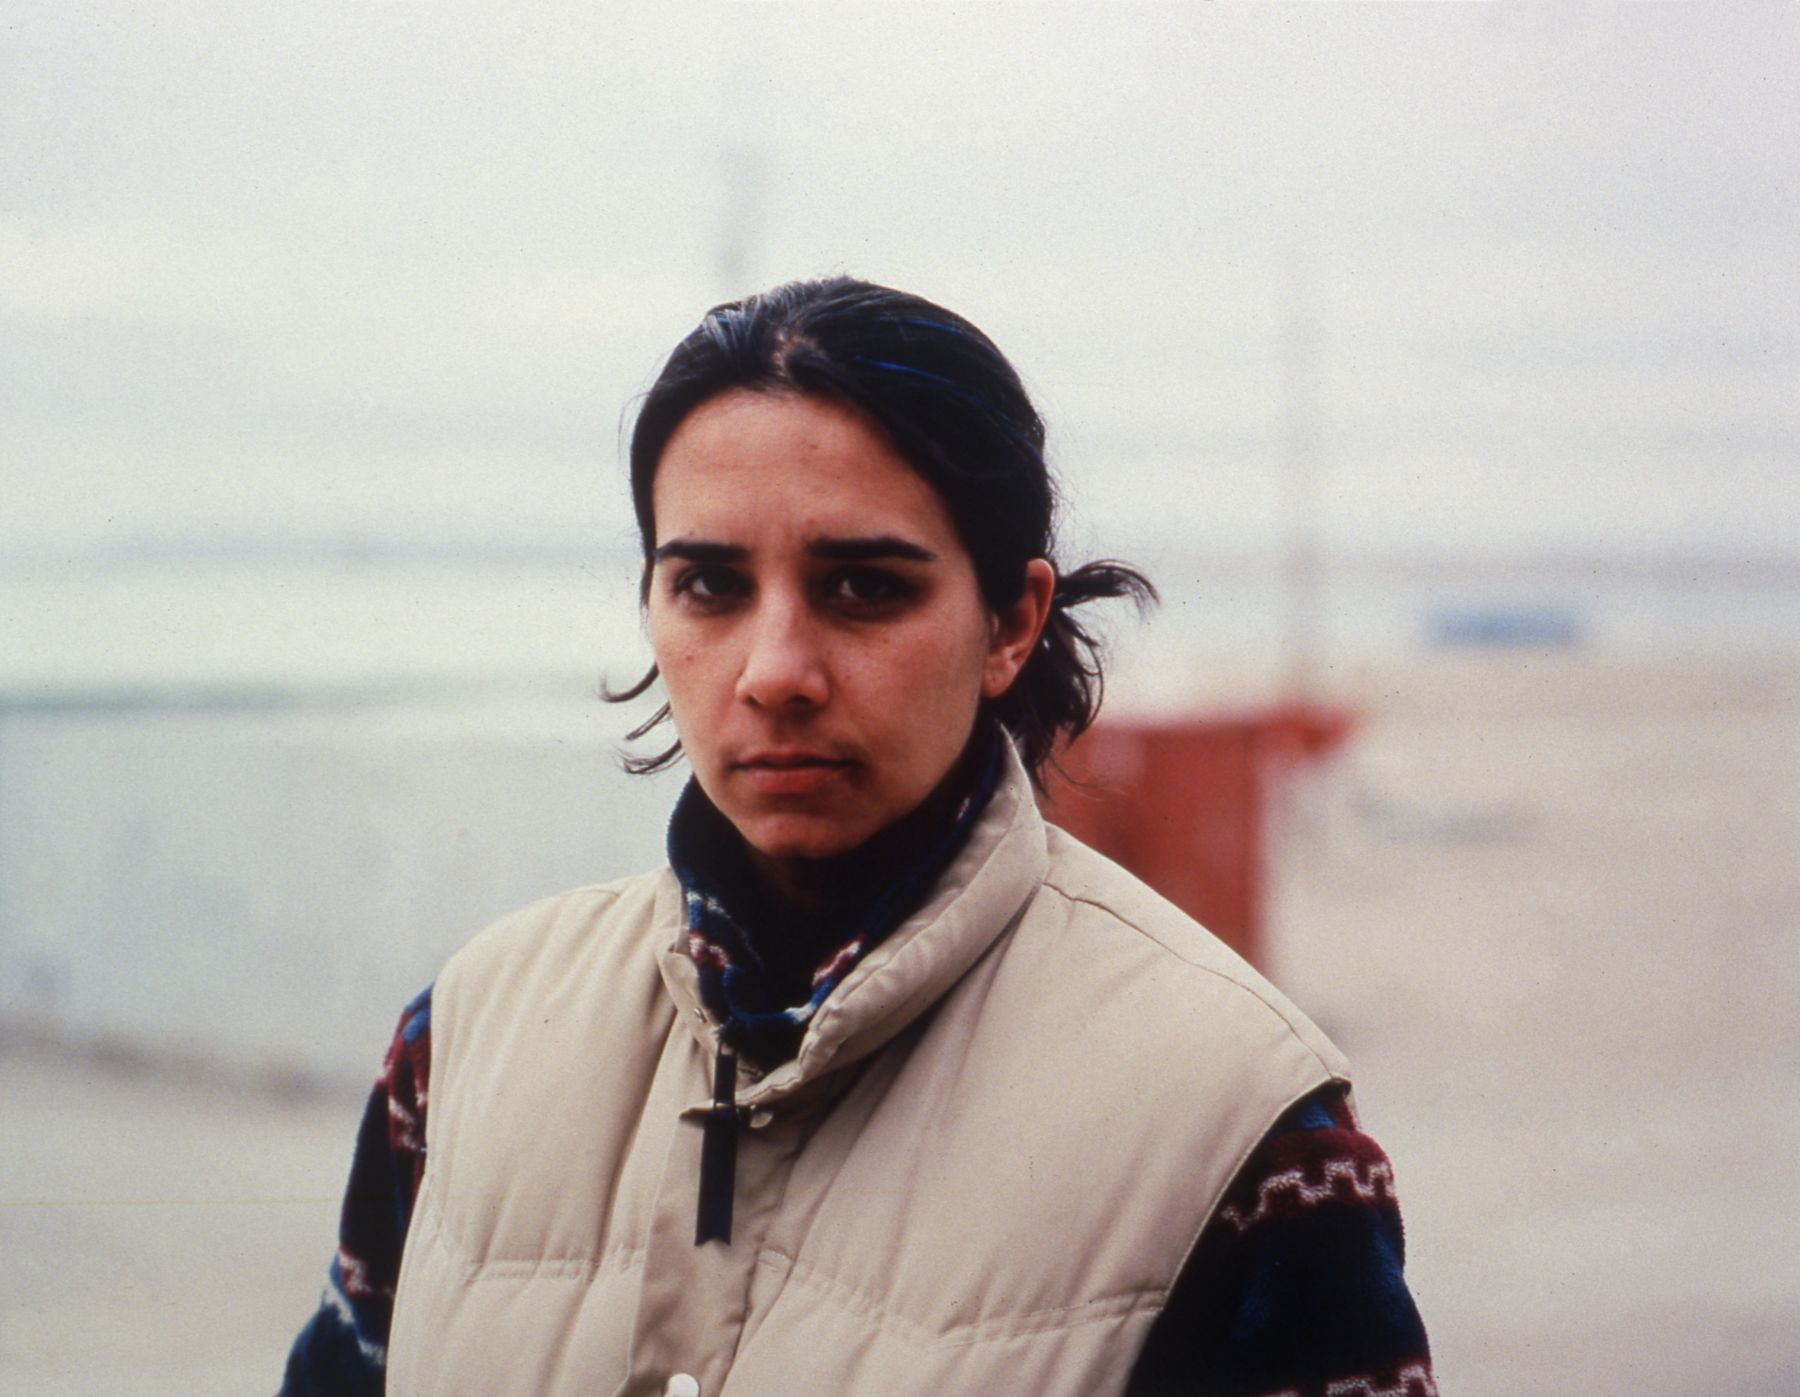 Ingrid R. Anand, 2000, c-print, 27 x 34 5/8 inches, edition of 5